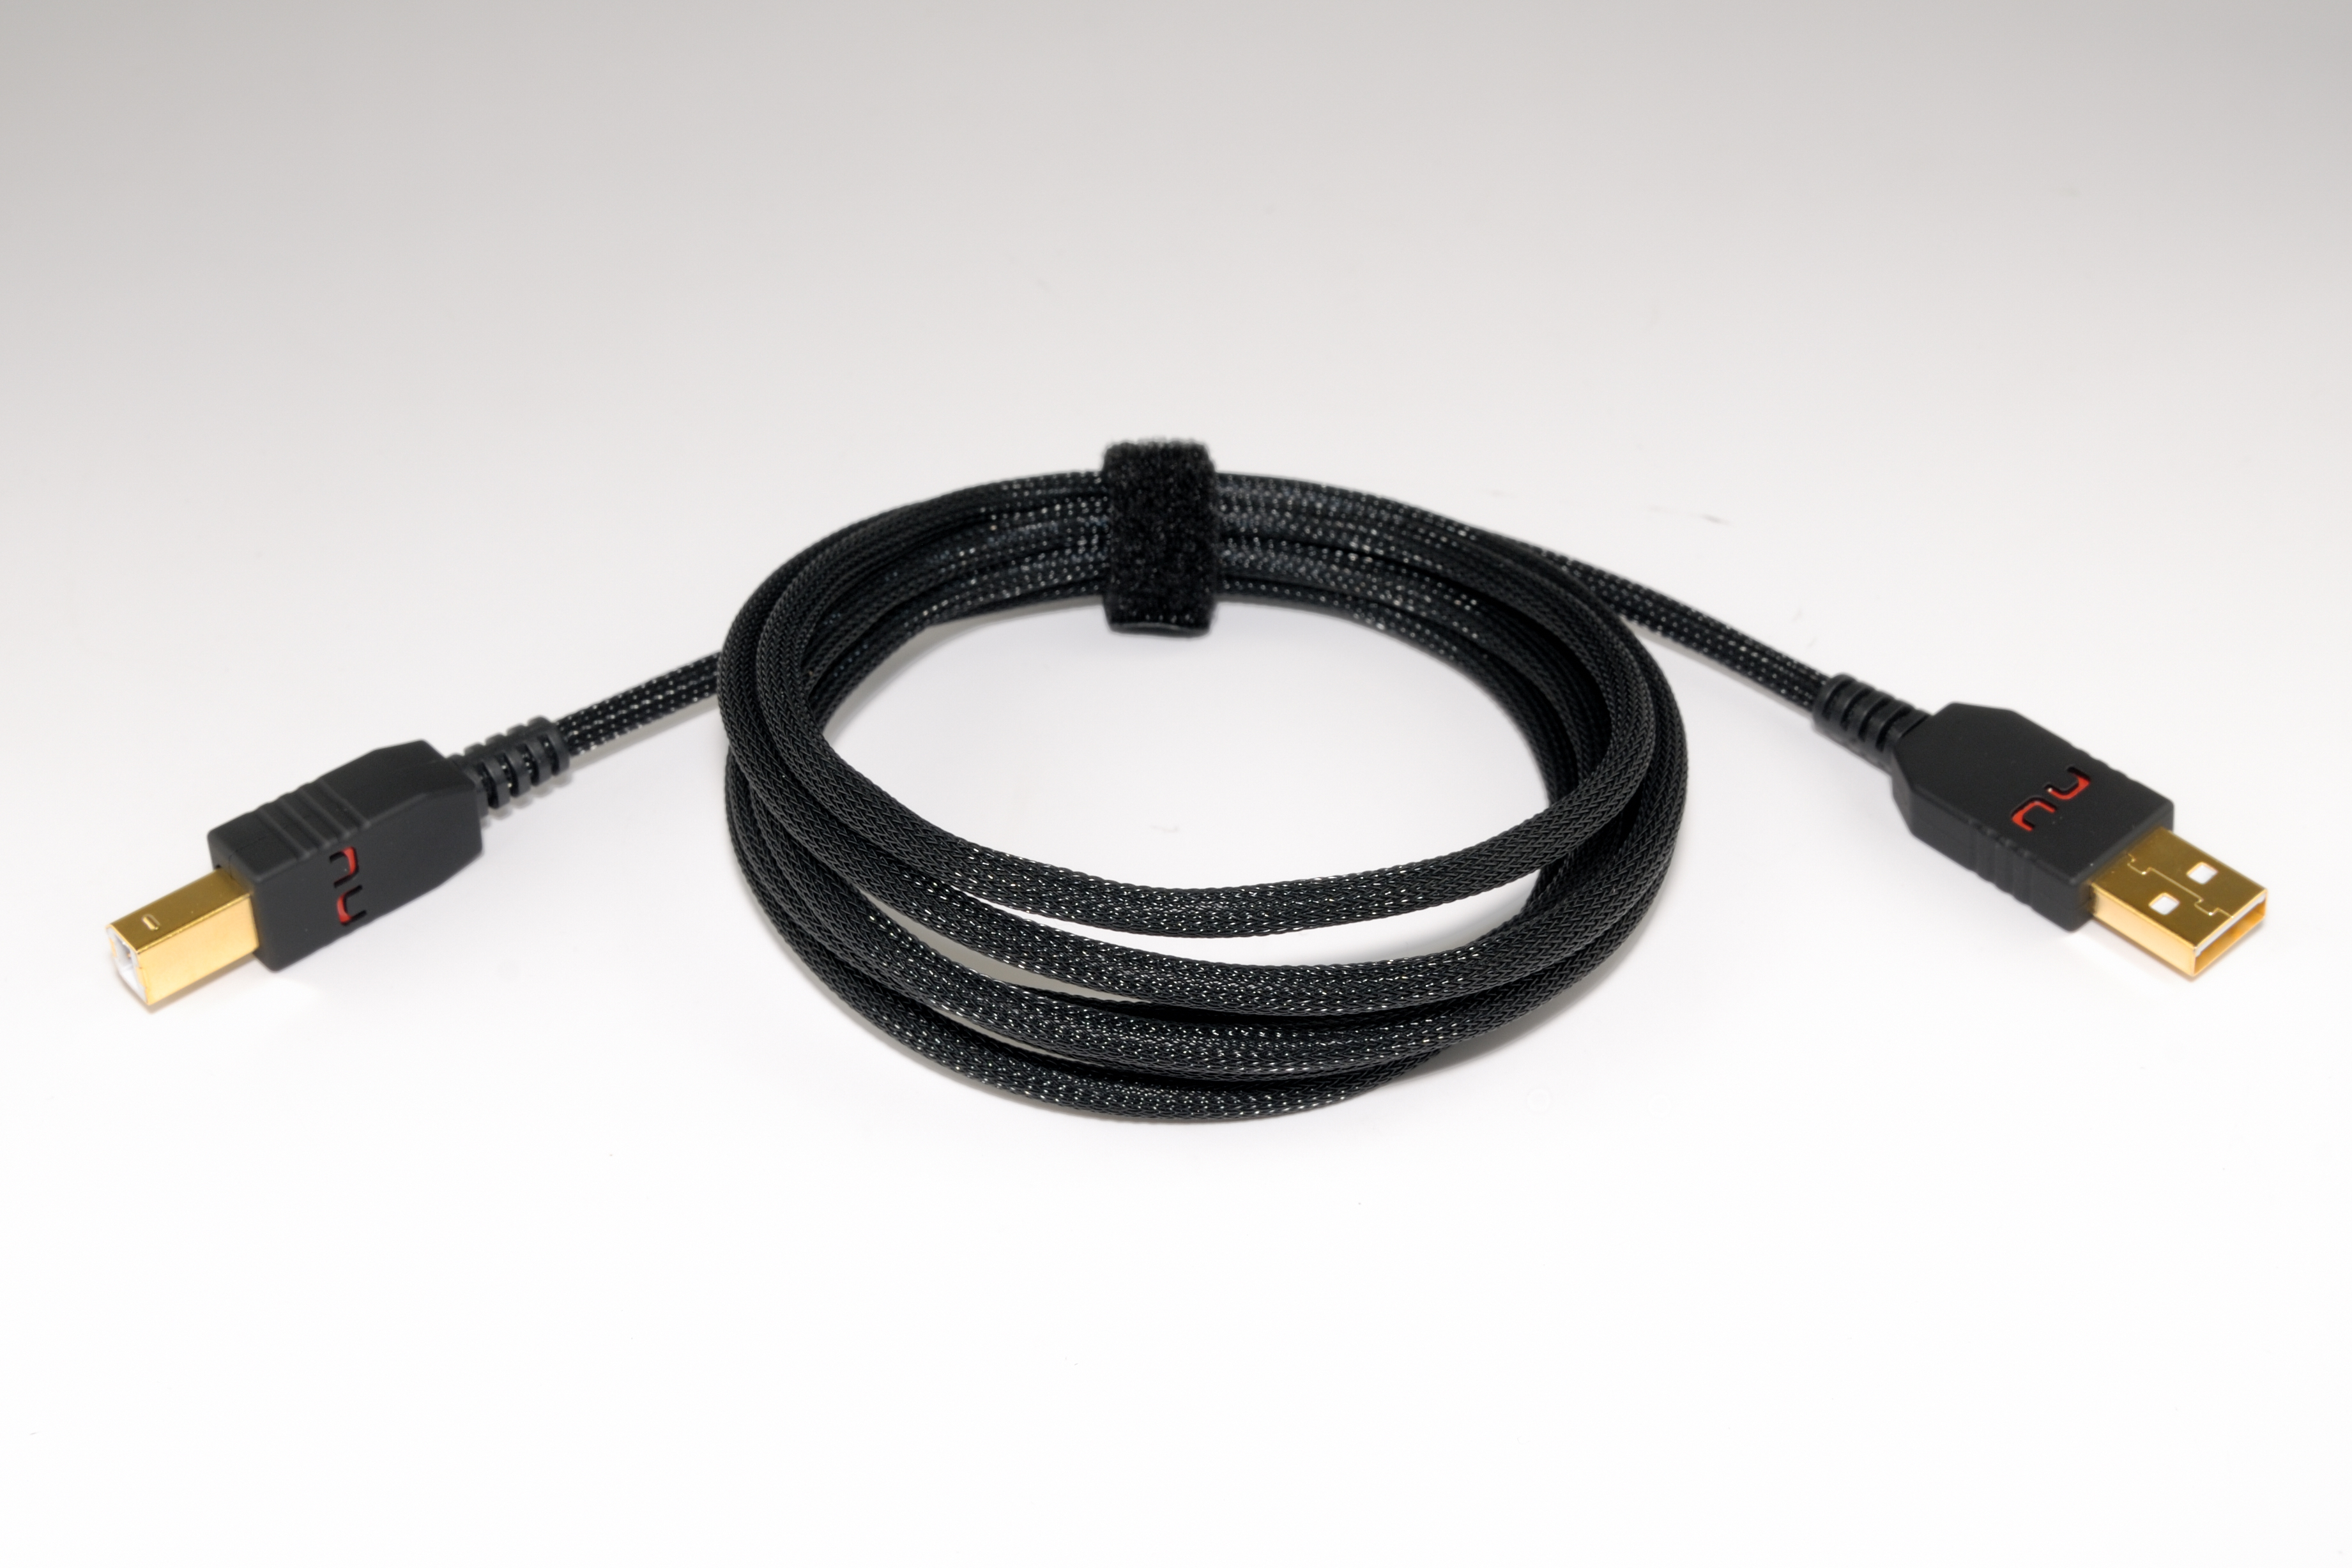 Speaker Cables To Usb : nuforce shipping high performance usb and cables in 2 weeks headphone reviews and ~ Hamham.info Haus und Dekorationen